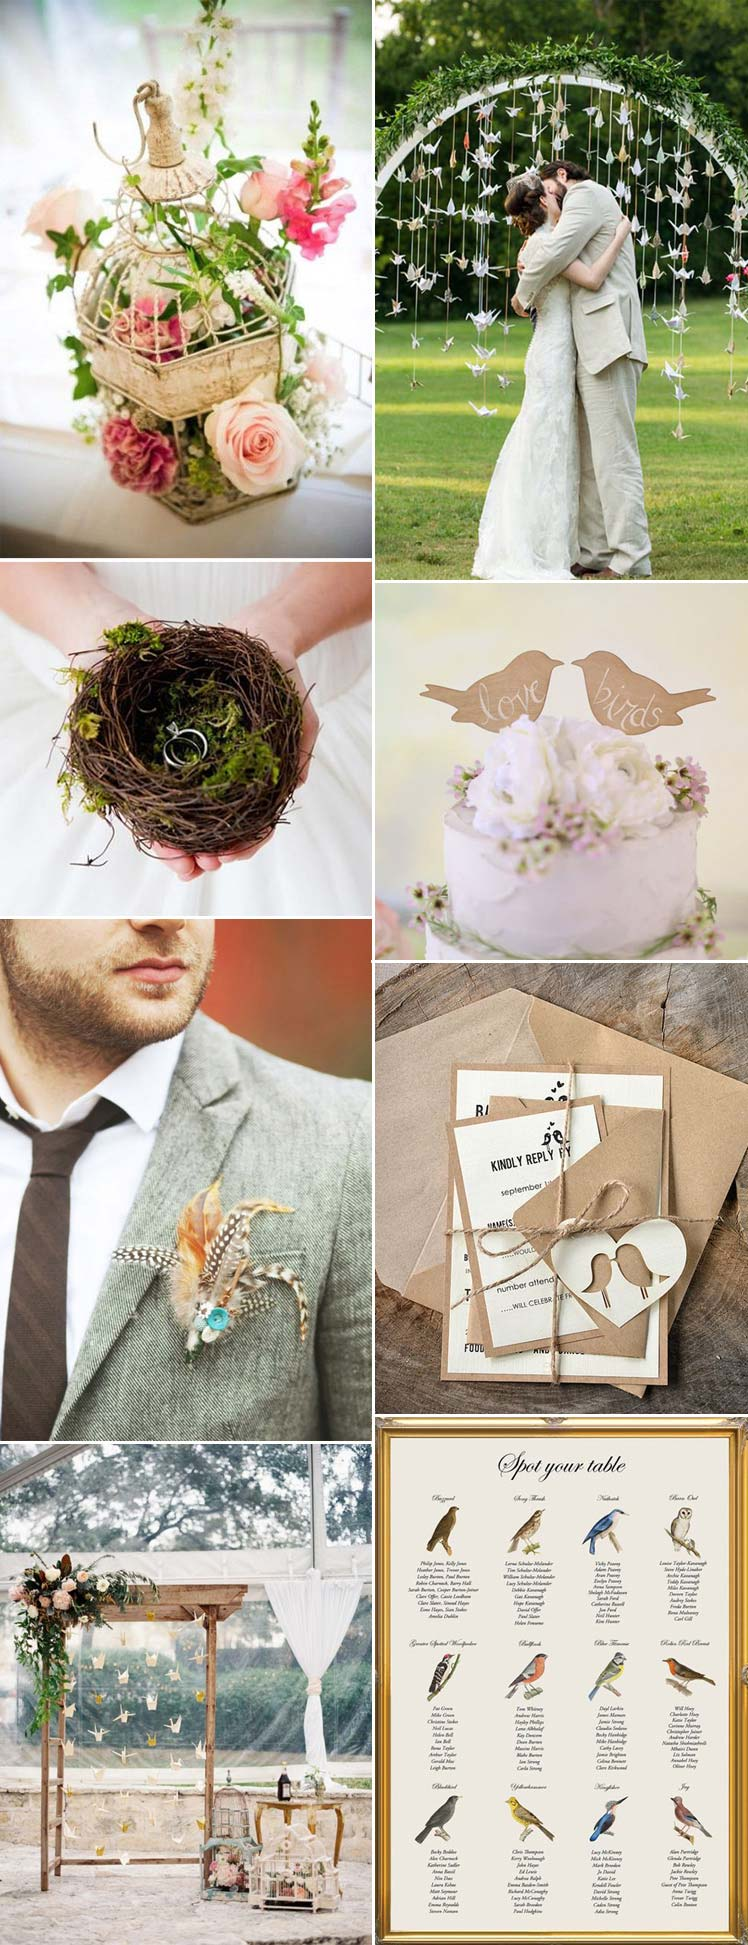 Beautiful bird theme wedding ideas